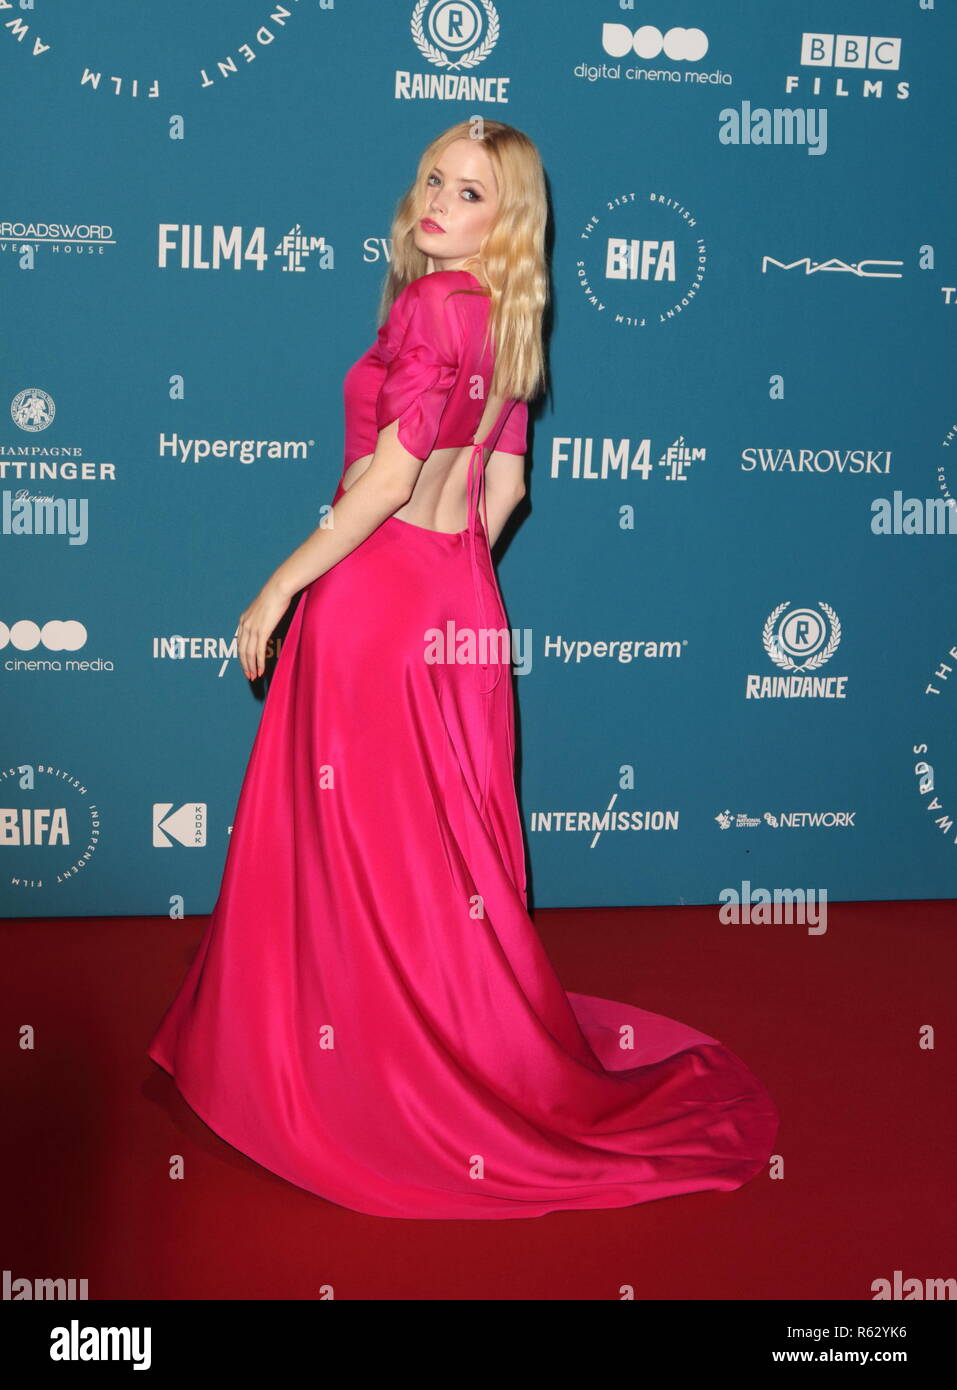 London, UK. 2nd Dec, 2018. Ellie Bamber seen during the British Independent Film Awards at the Old Billingsgate. Credit: Keith Mayhew/SOPA Images/ZUMA Wire/Alamy Live News - Stock Image